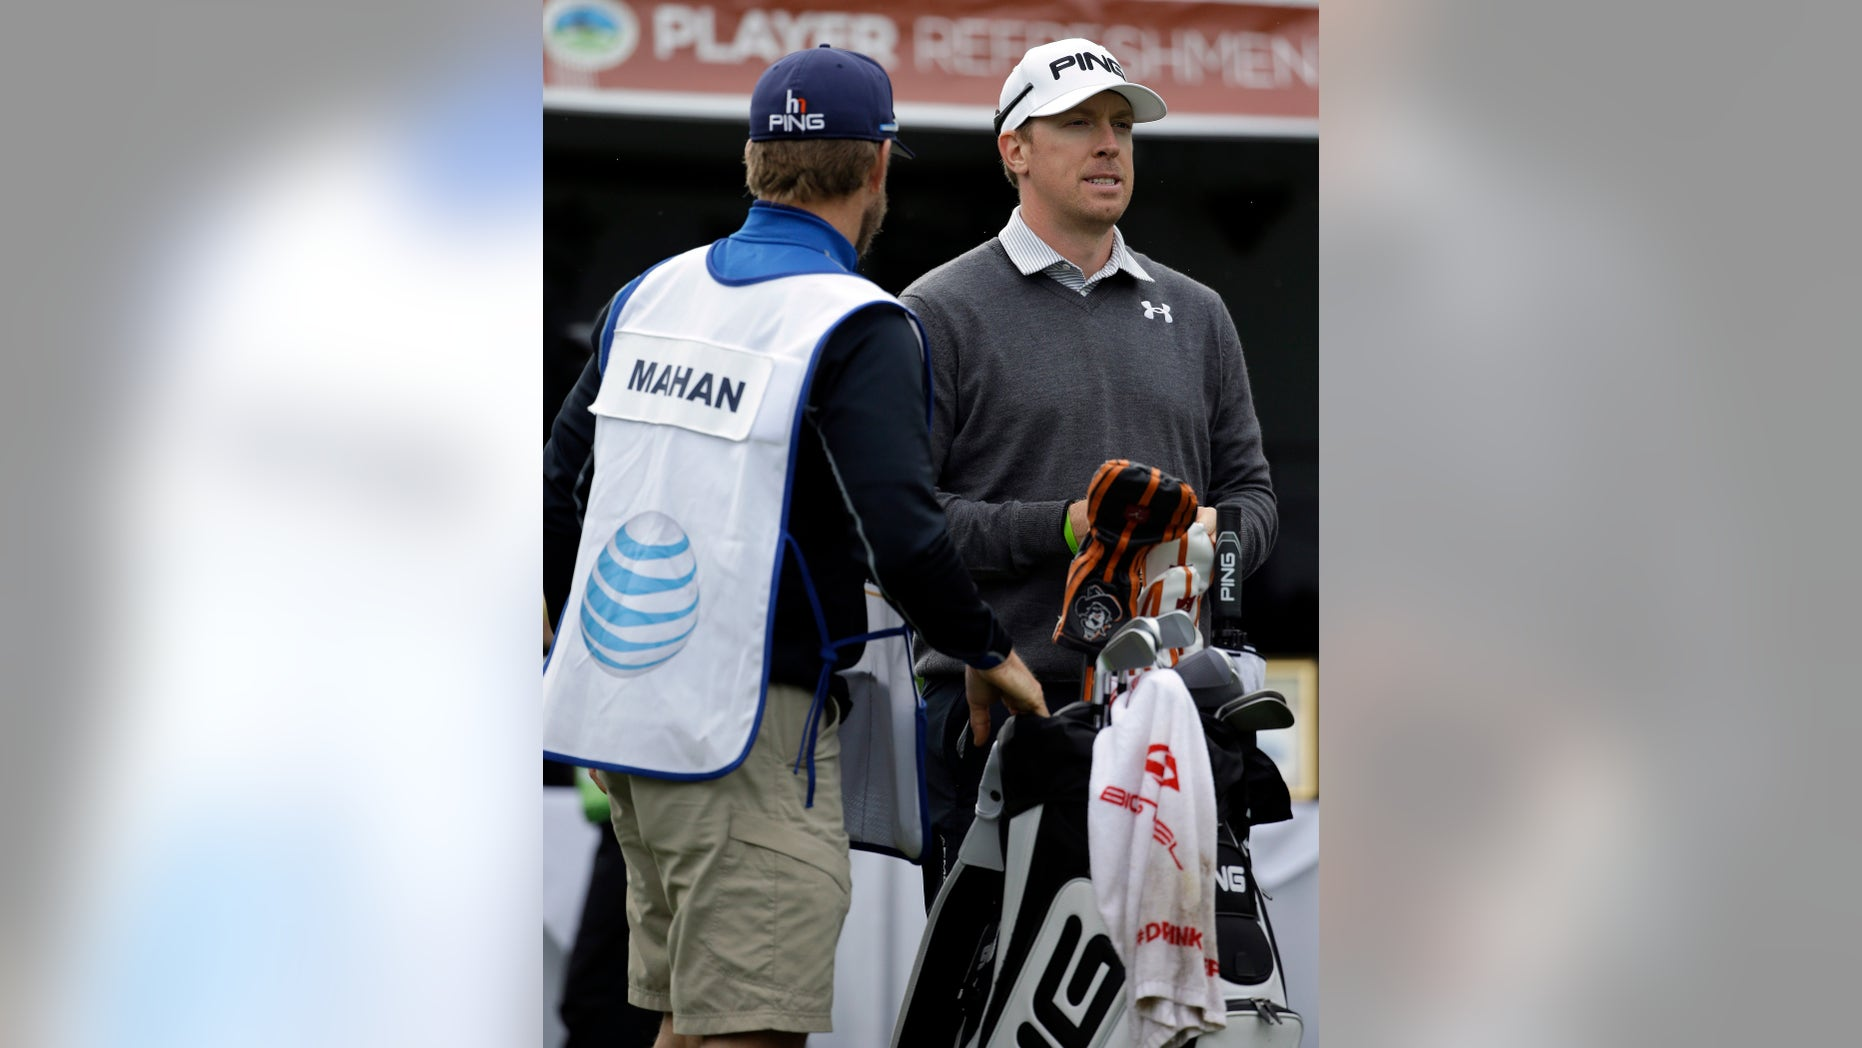 Hunter Mahan, right, waits to hit off the first tee on Friday, Feb. 7, 2014, during the second round of the AT&T Pebble Beach Pro-Am golf tournament on the Spyglass Hill Golf Course in Pebble Beach, Calif. (AP Photo/Ben Margot)